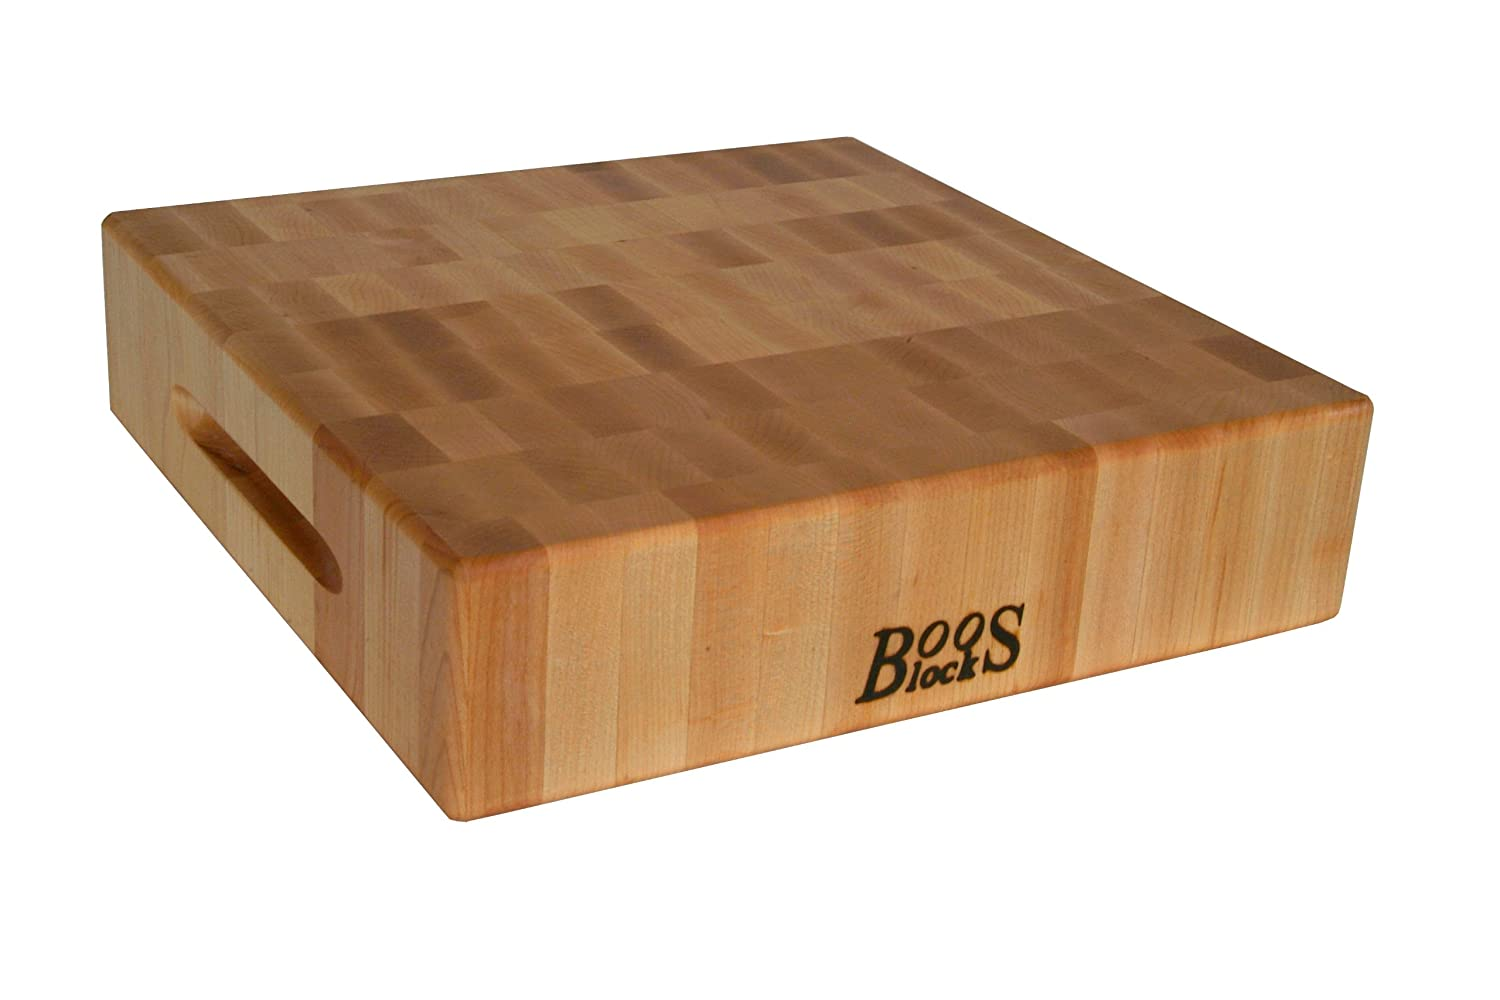 Maple 12  x 12  x 3 John Boos Block CCB1818-225 Classic Reversible Maple Wood End Grain Chopping Block, 18 Inches x 18 Inches x by 2.25 Inches